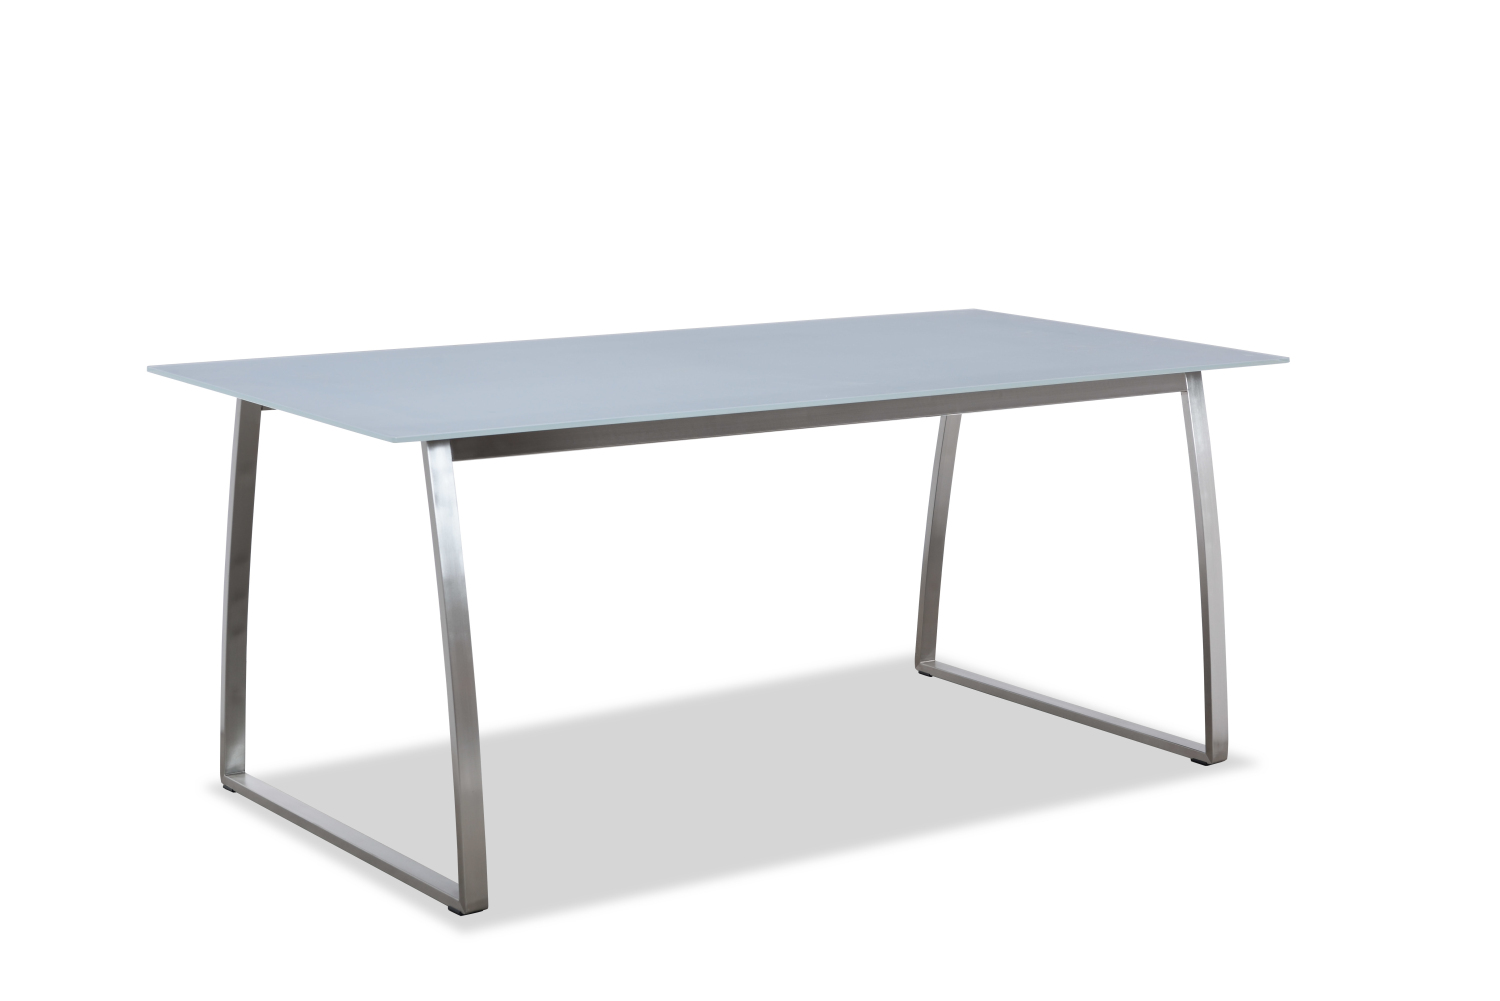 2018 new collection outdoor glass dining table(T303G)